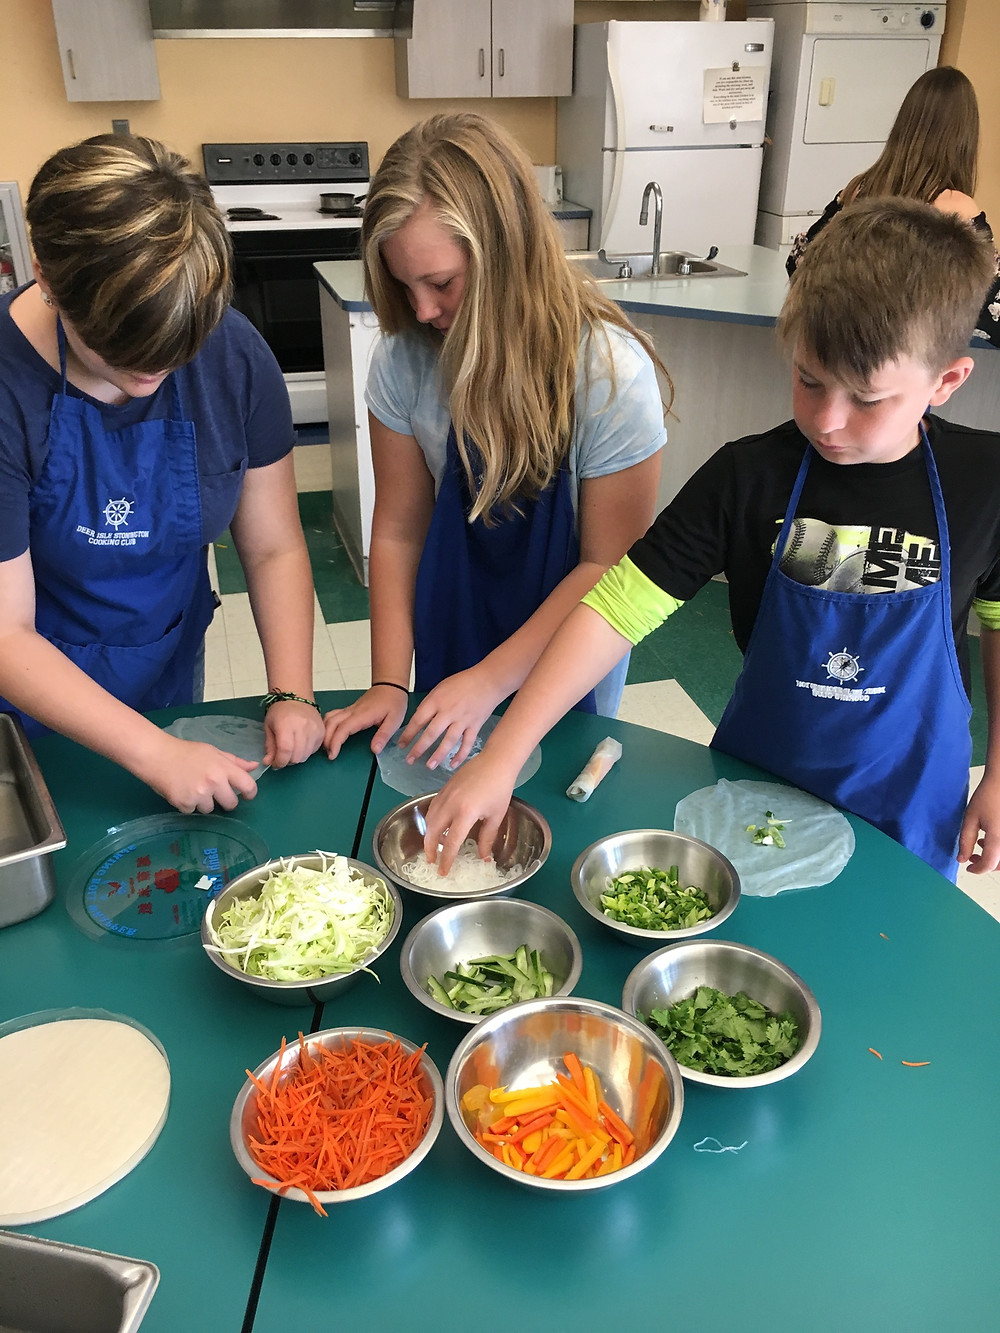 Students construct their own vegetable spring rolls.